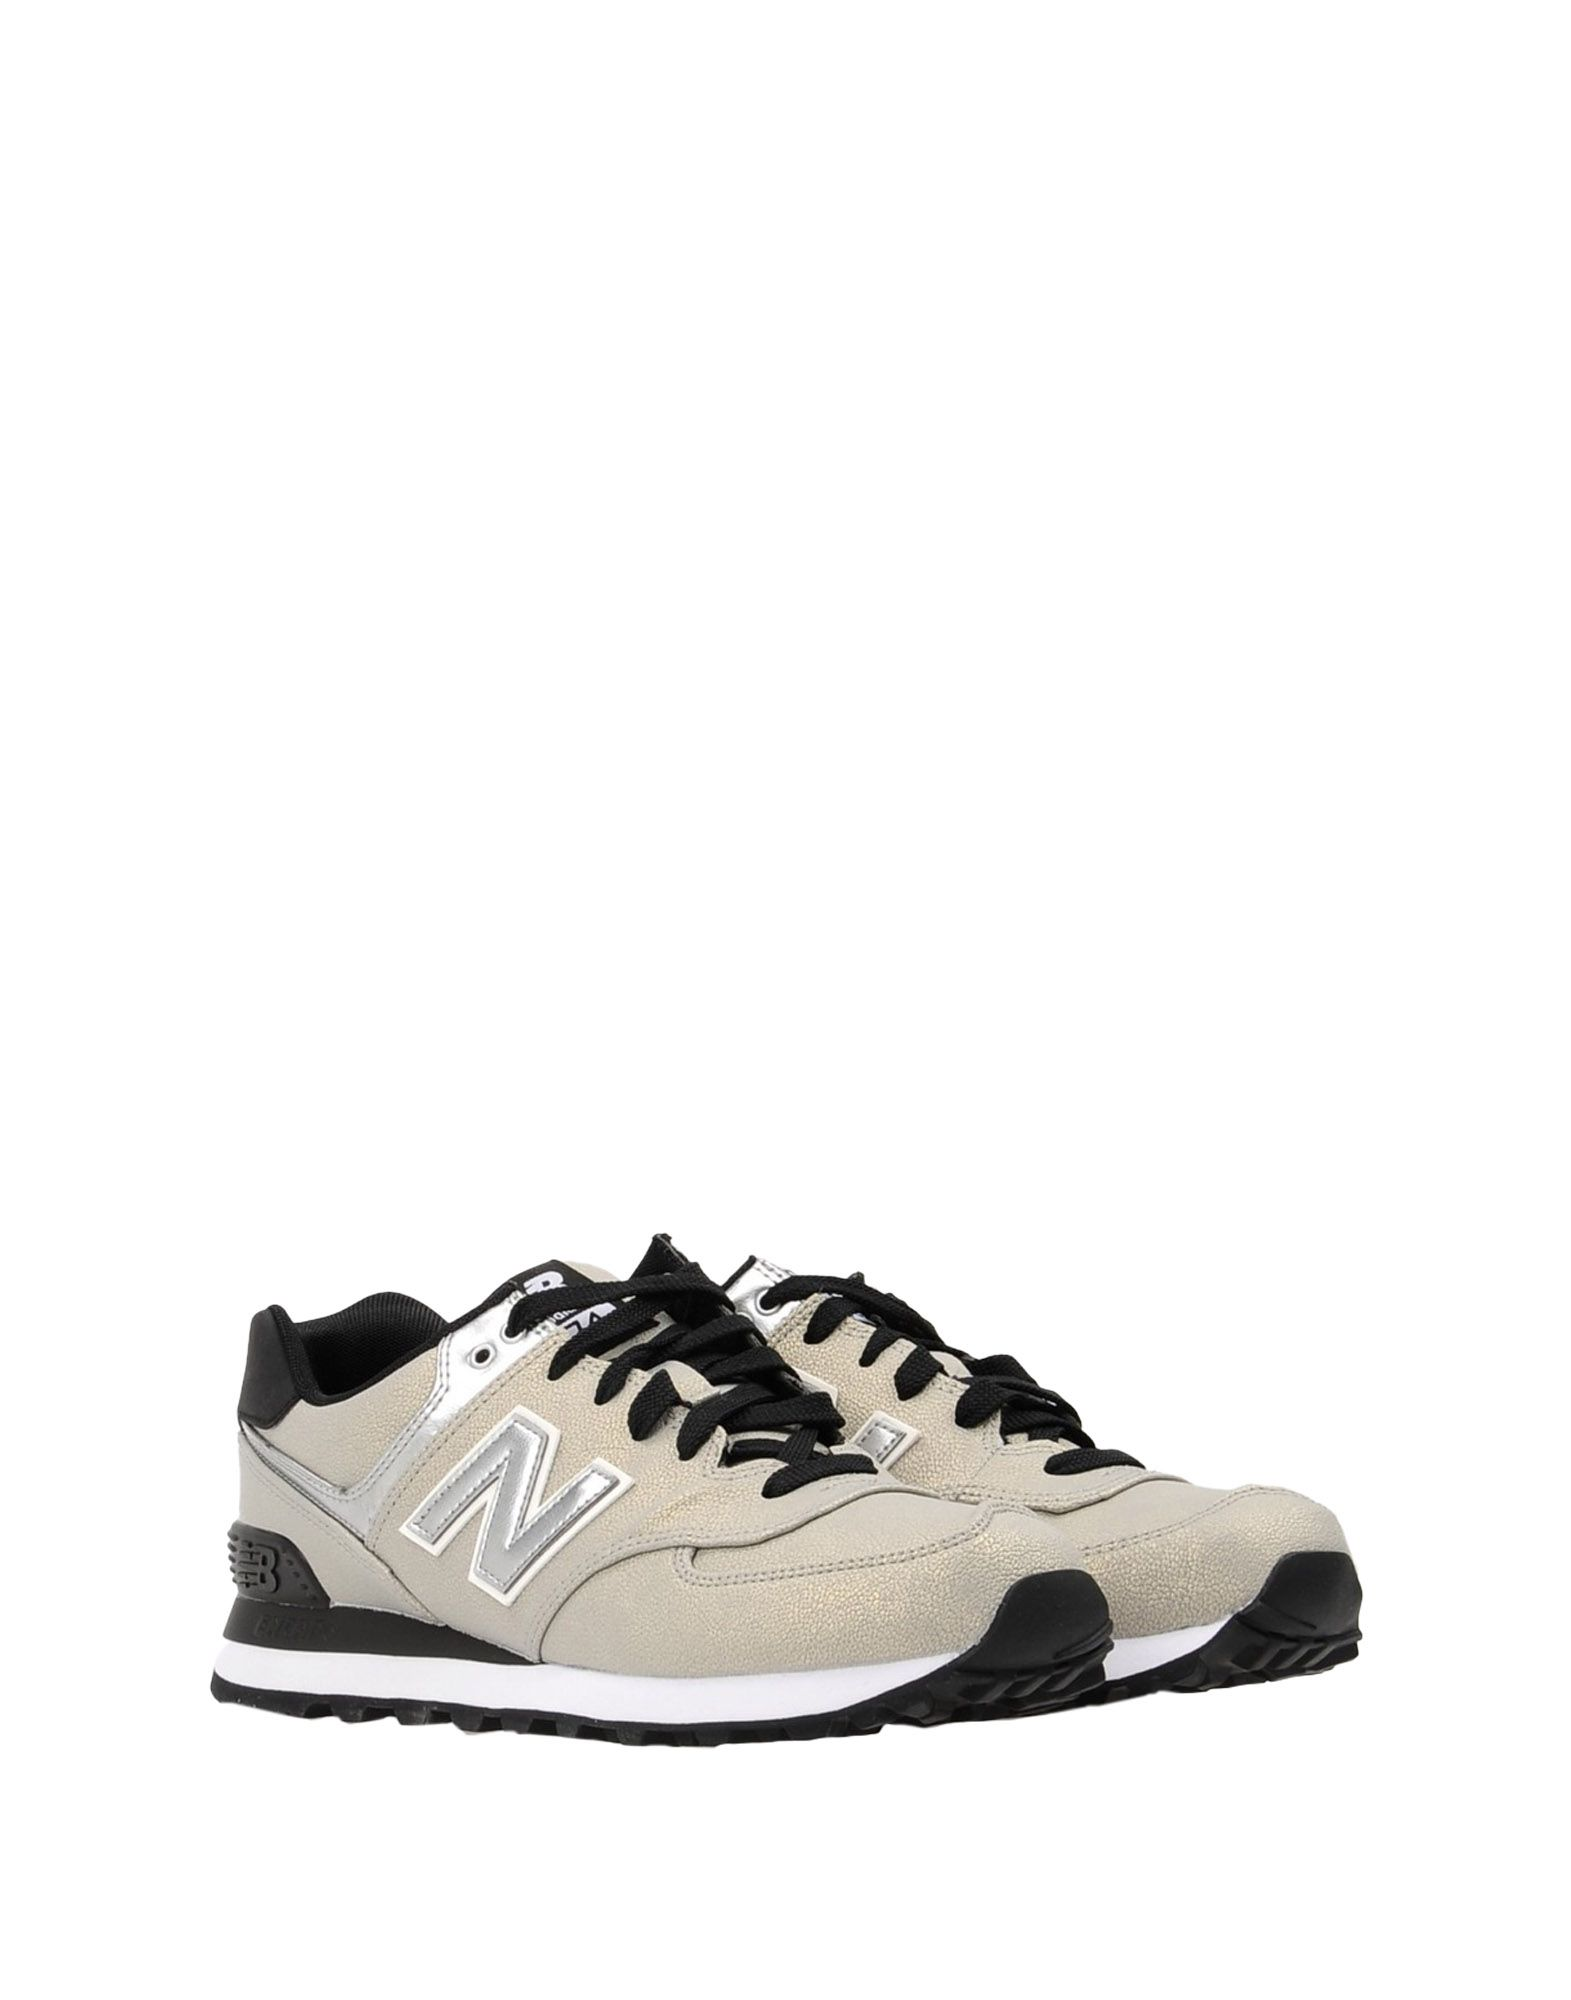 Sneakers New Balance 574 Synthetic Shiny Leather - Femme - Sneakers New Balance sur